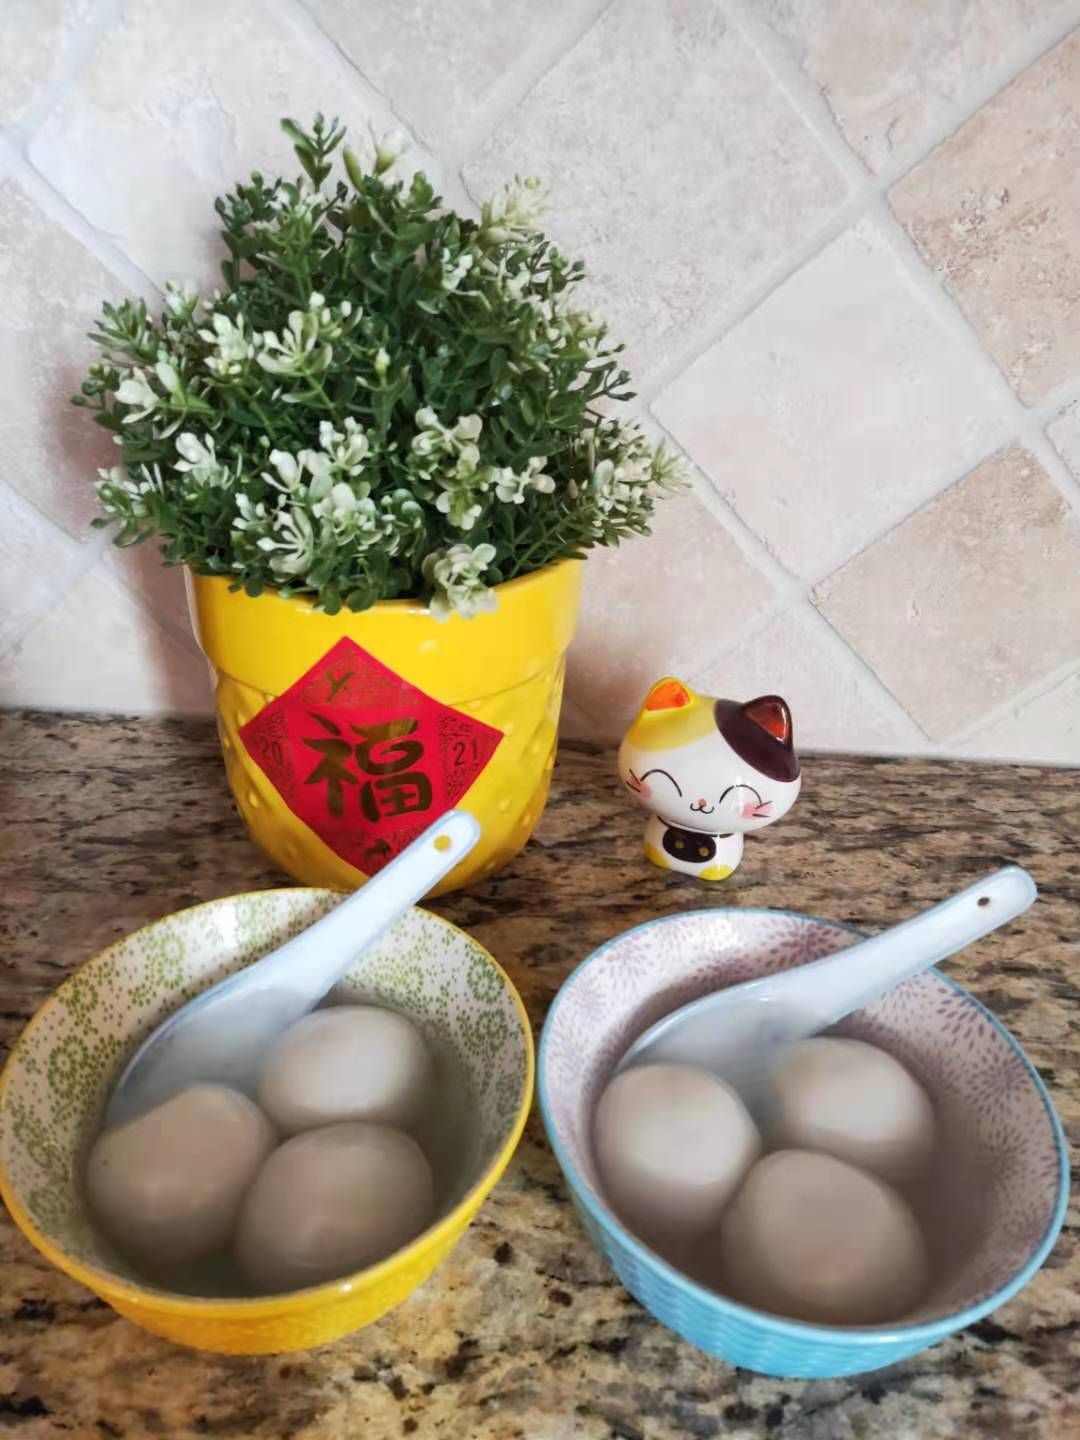 Photo of two bowls of tangyuan, white buns.